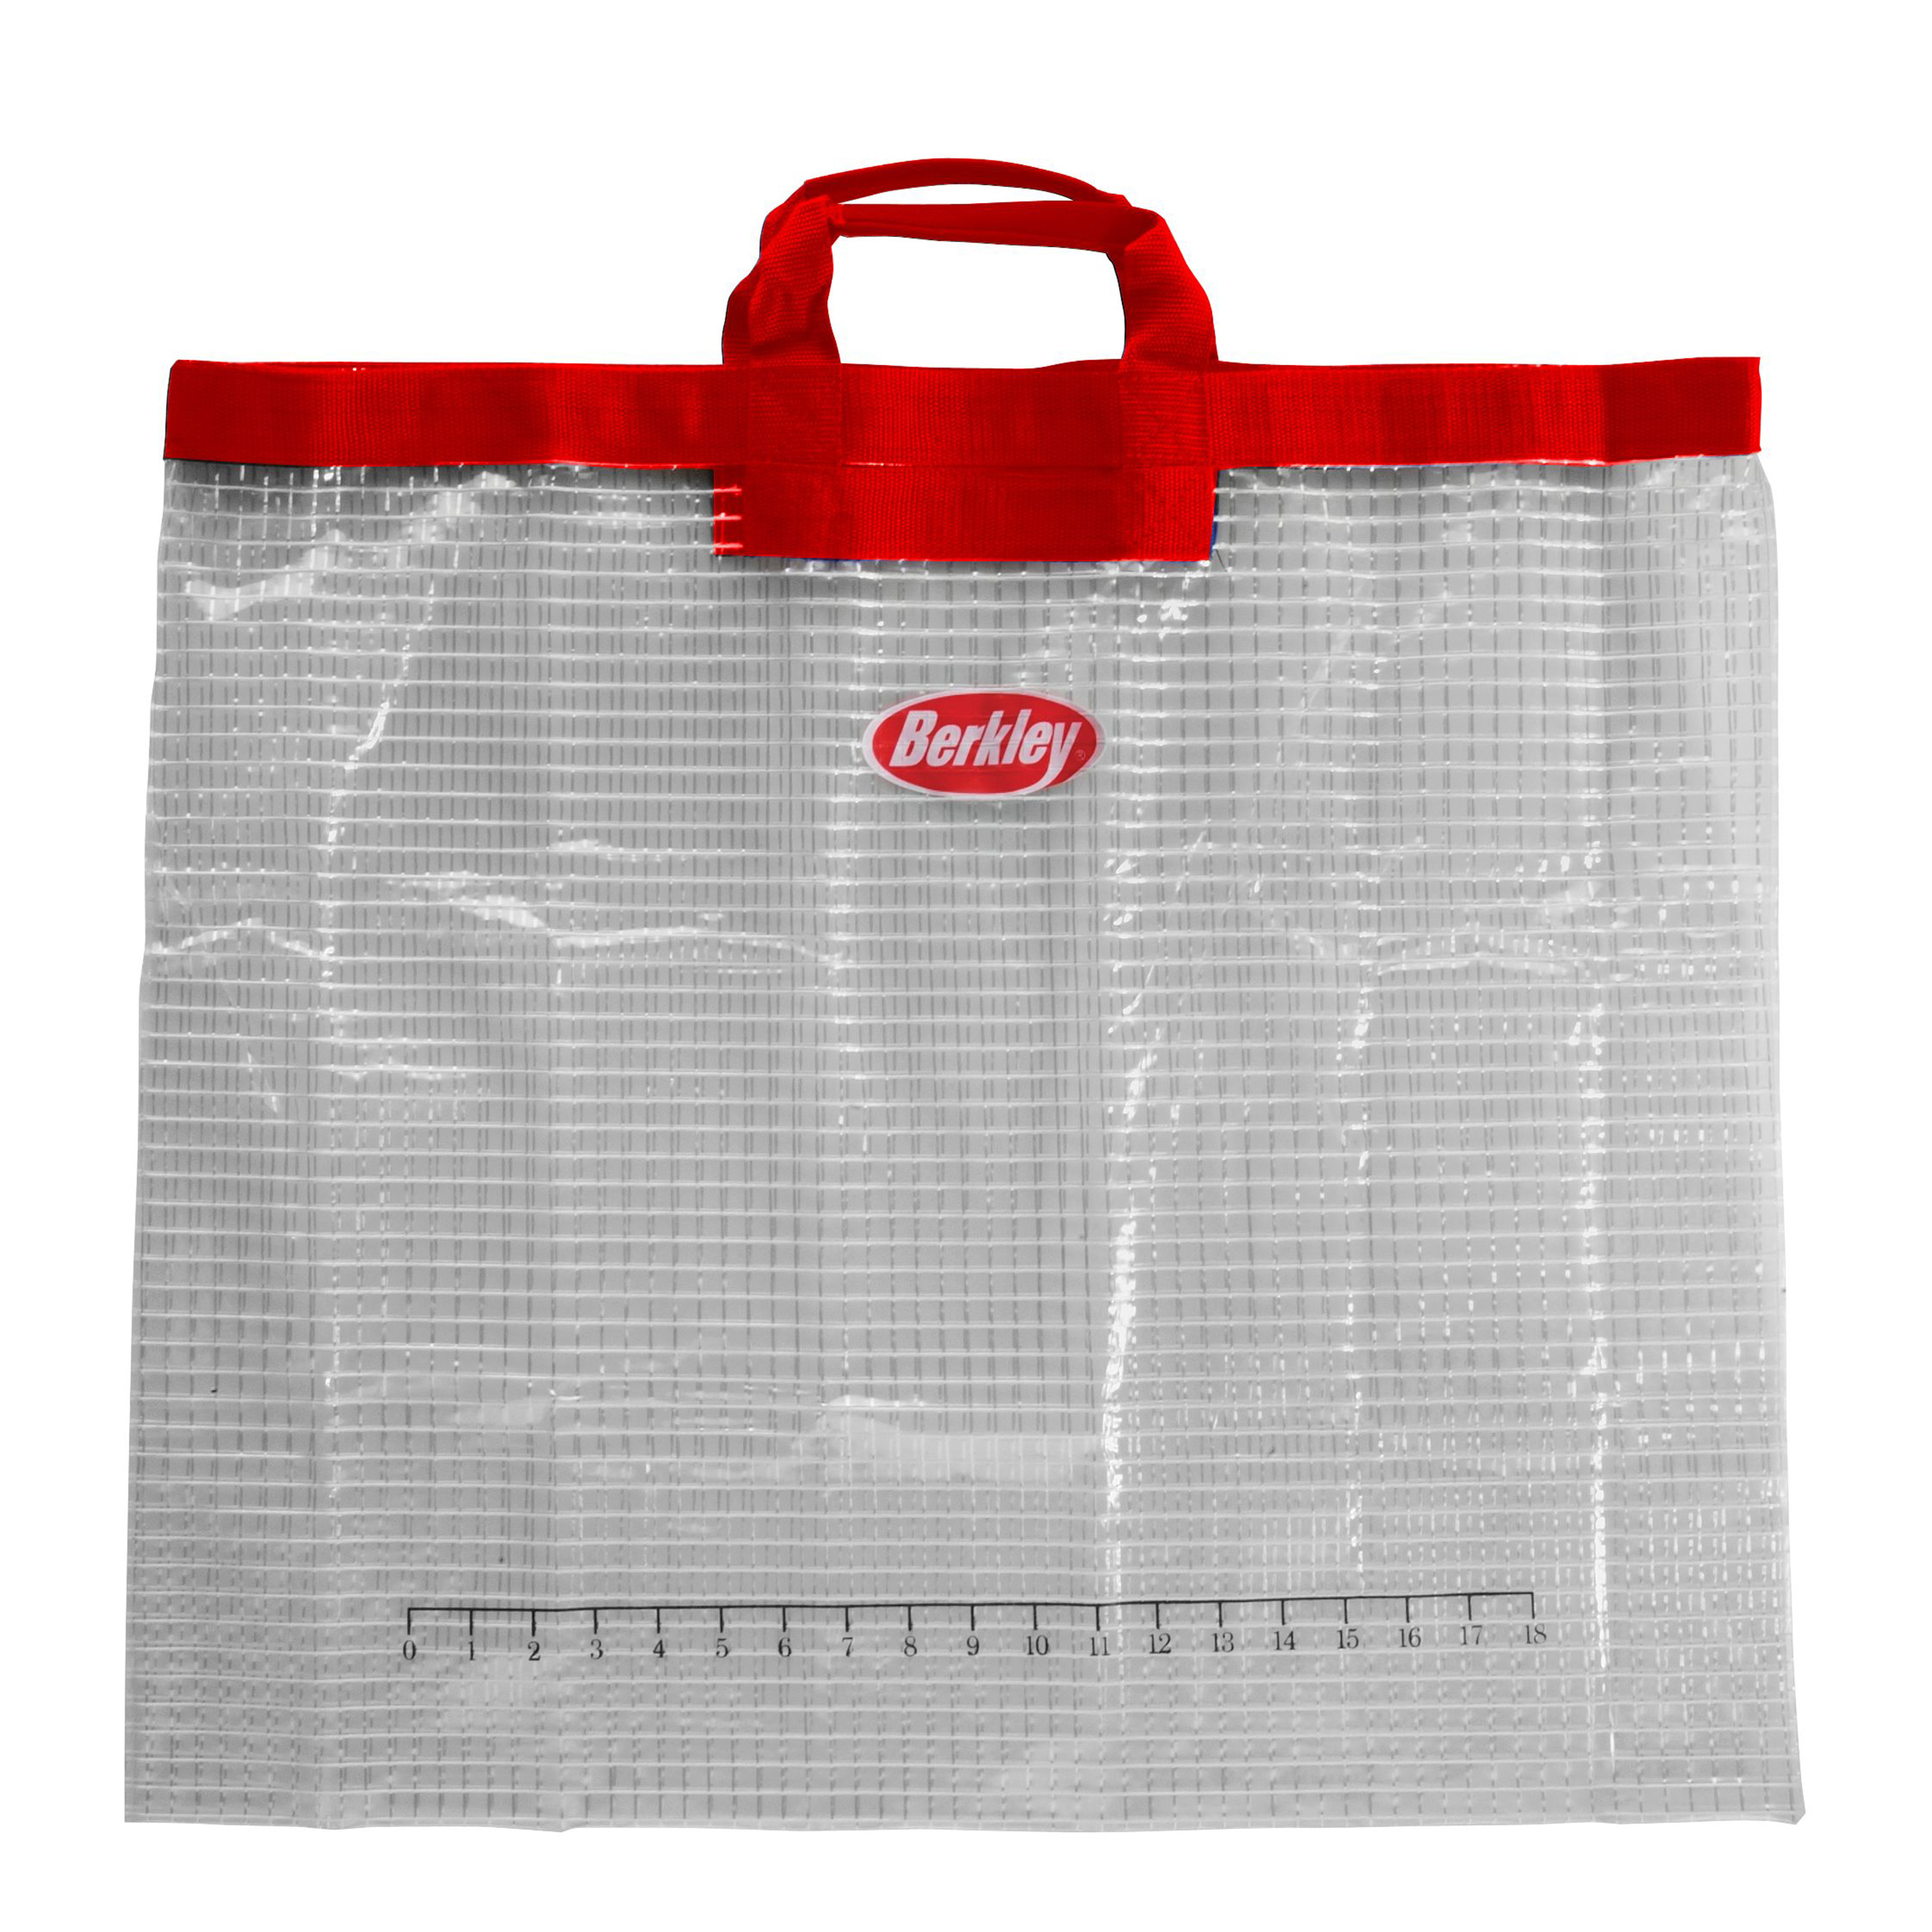 BAHDFB HVY DTY PVC FISH BAG W/18IN RULER